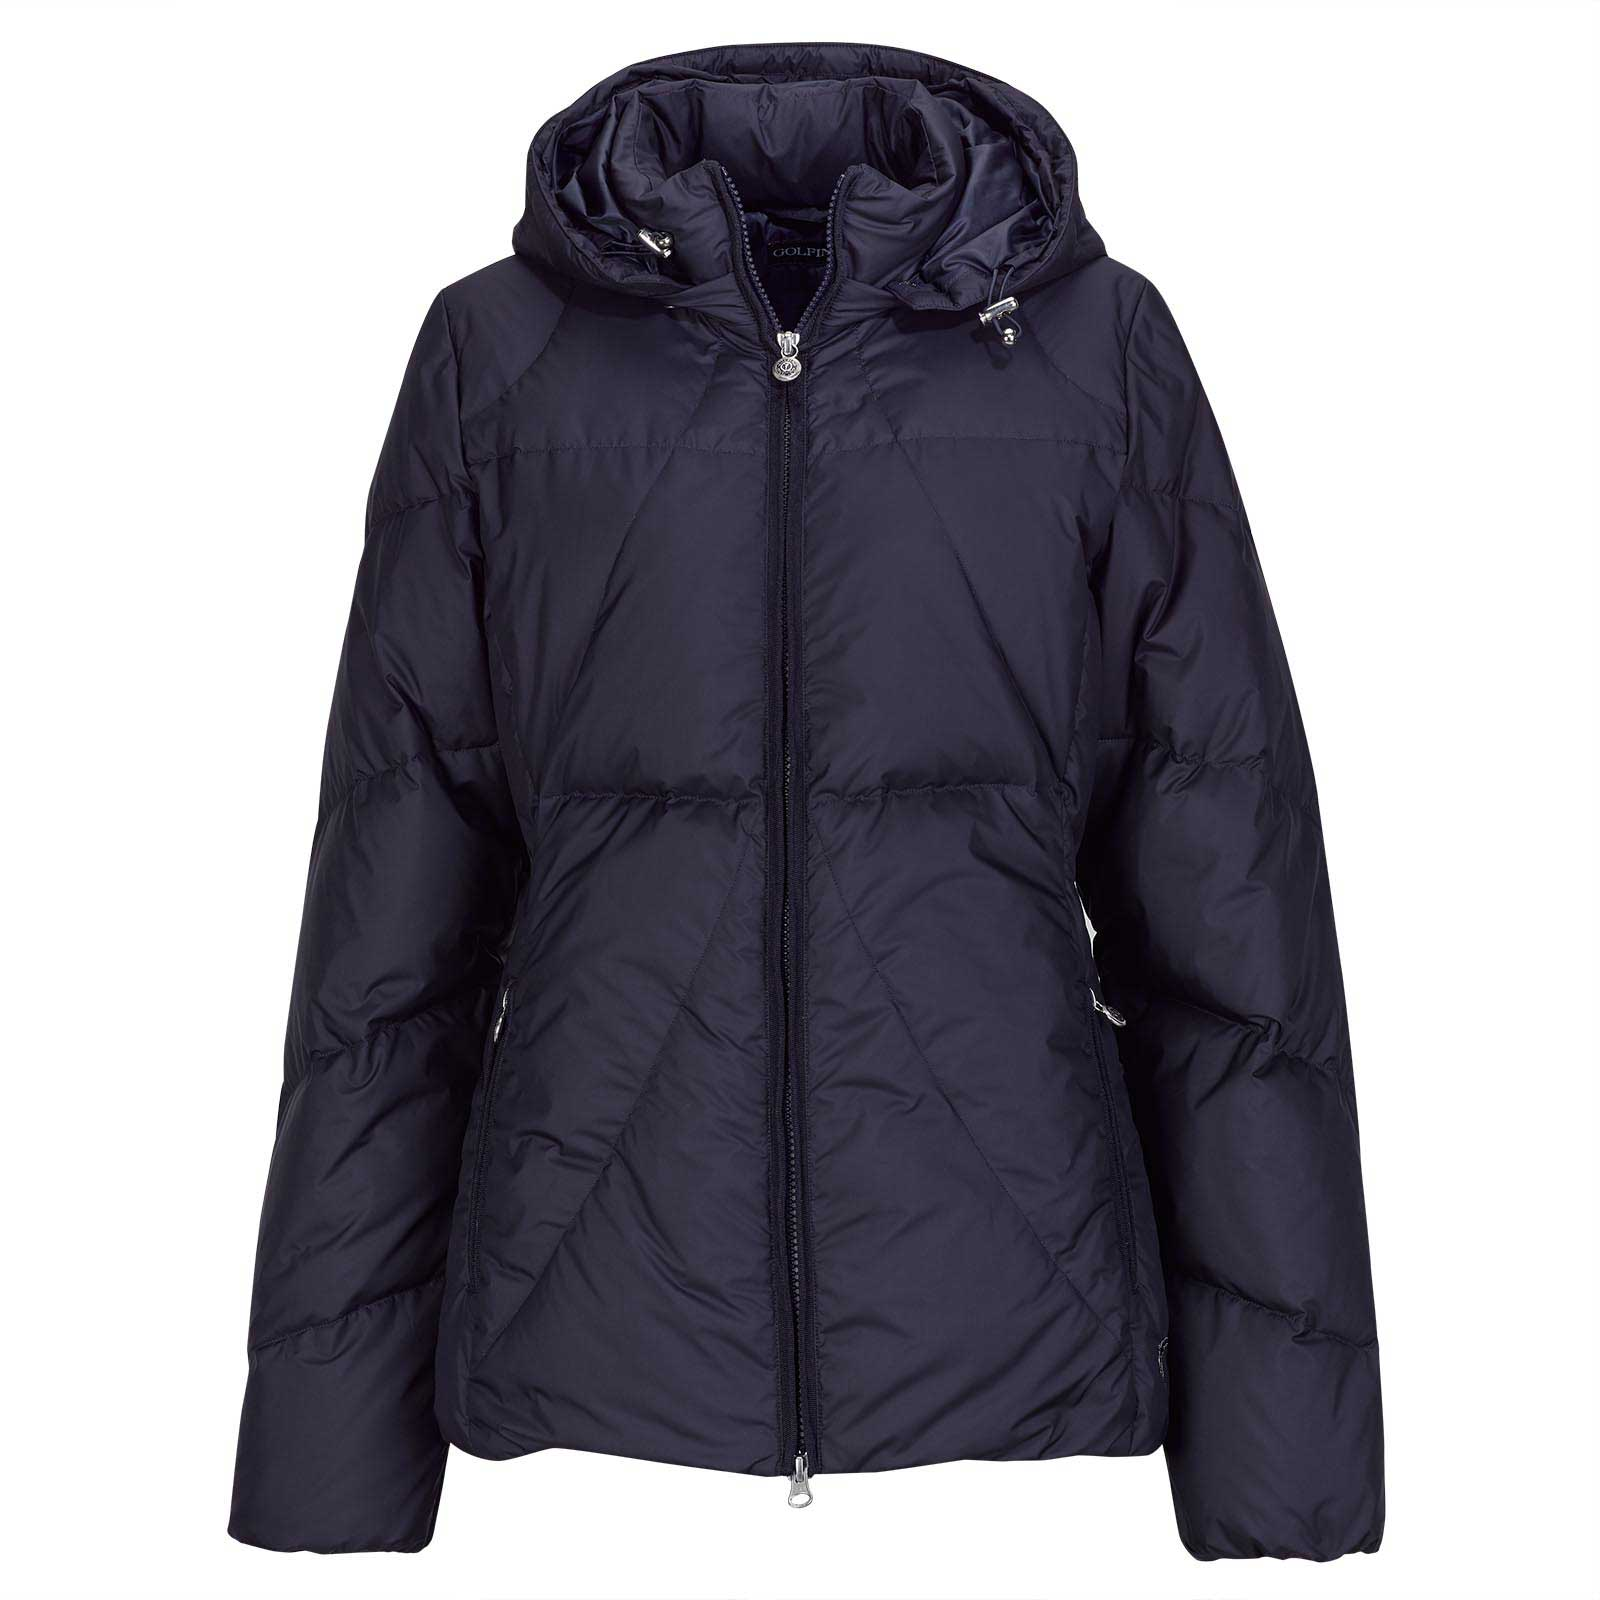 Ladies' quilted jacket with down filling and removable hood